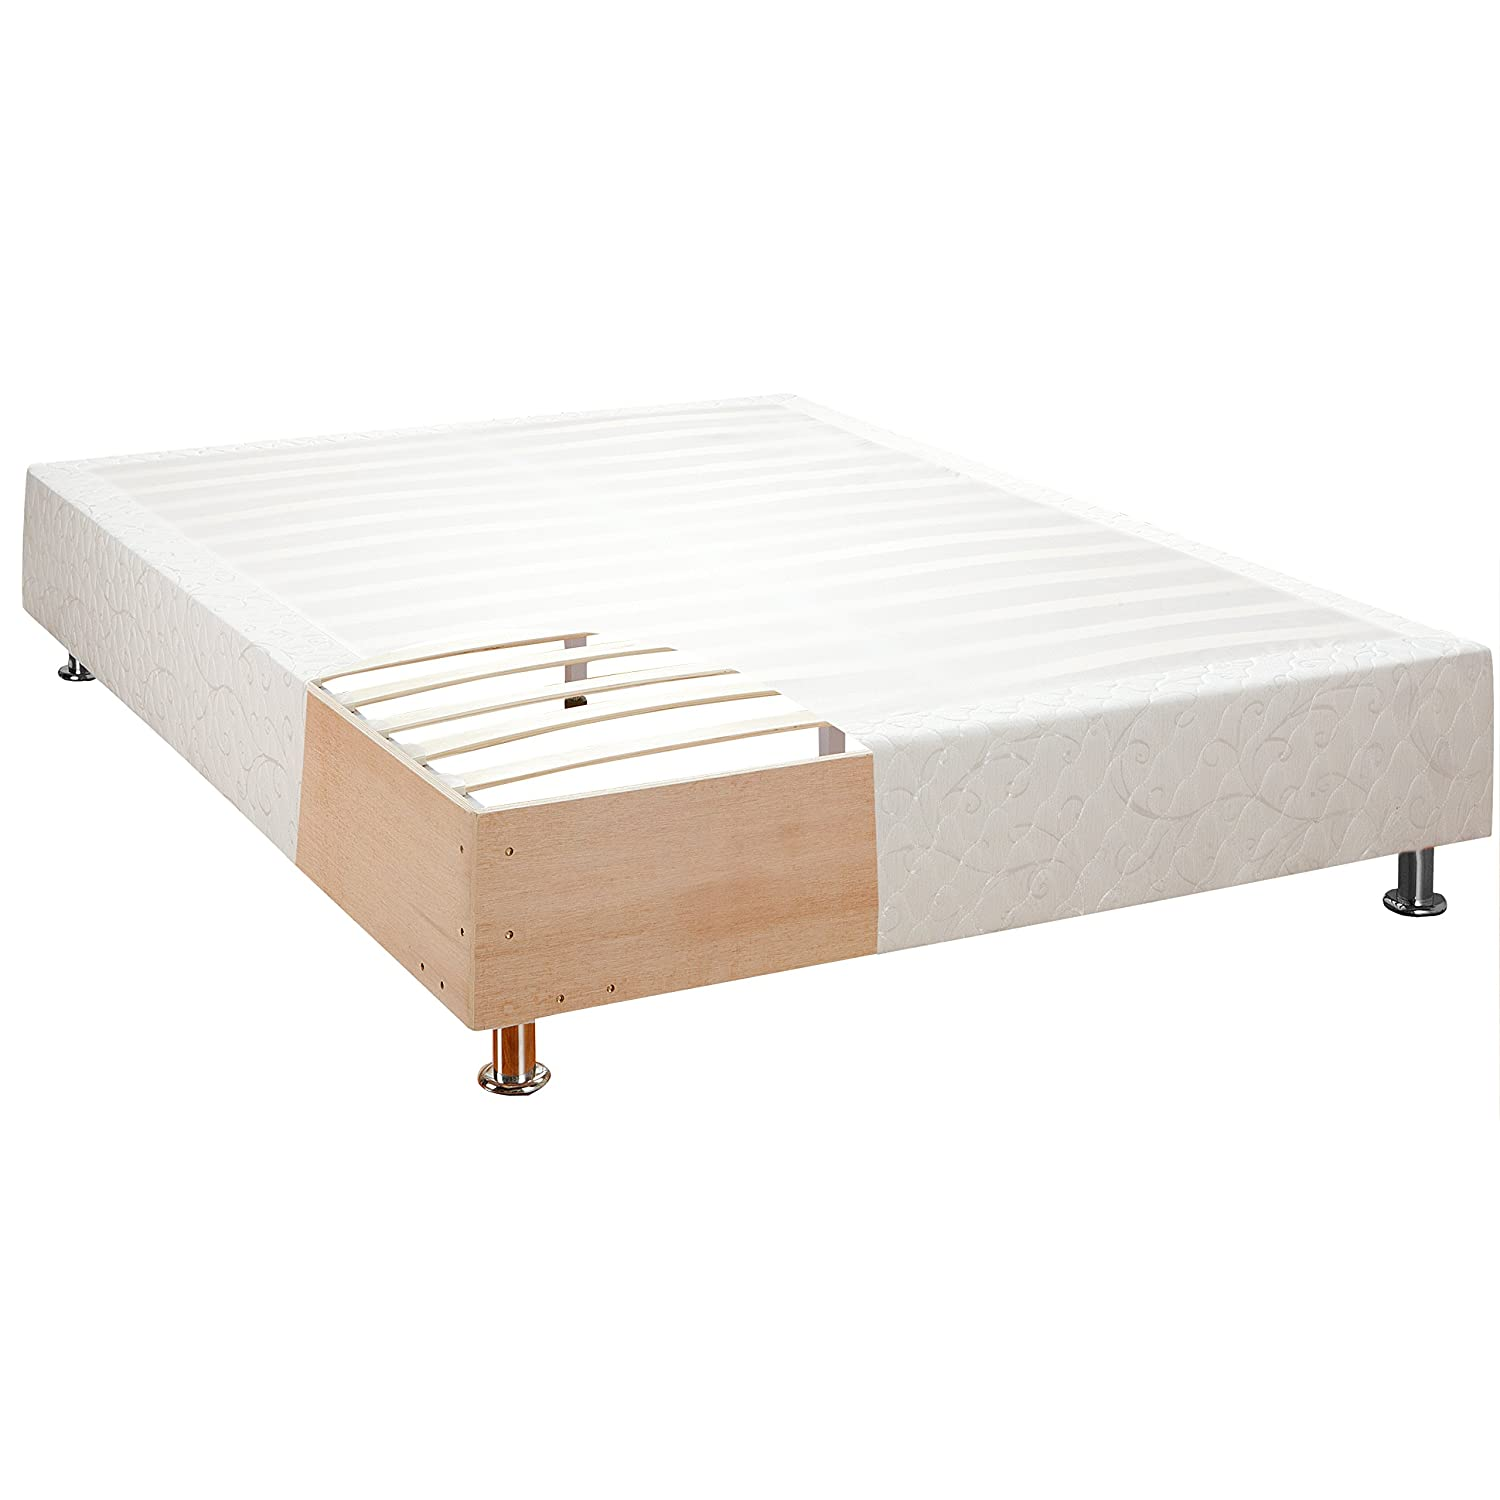 with beds bed padded color platform full zq storage enamour imposing then brookstone bedding state typestorage storageunderh wooden size build frame ana popular a king and